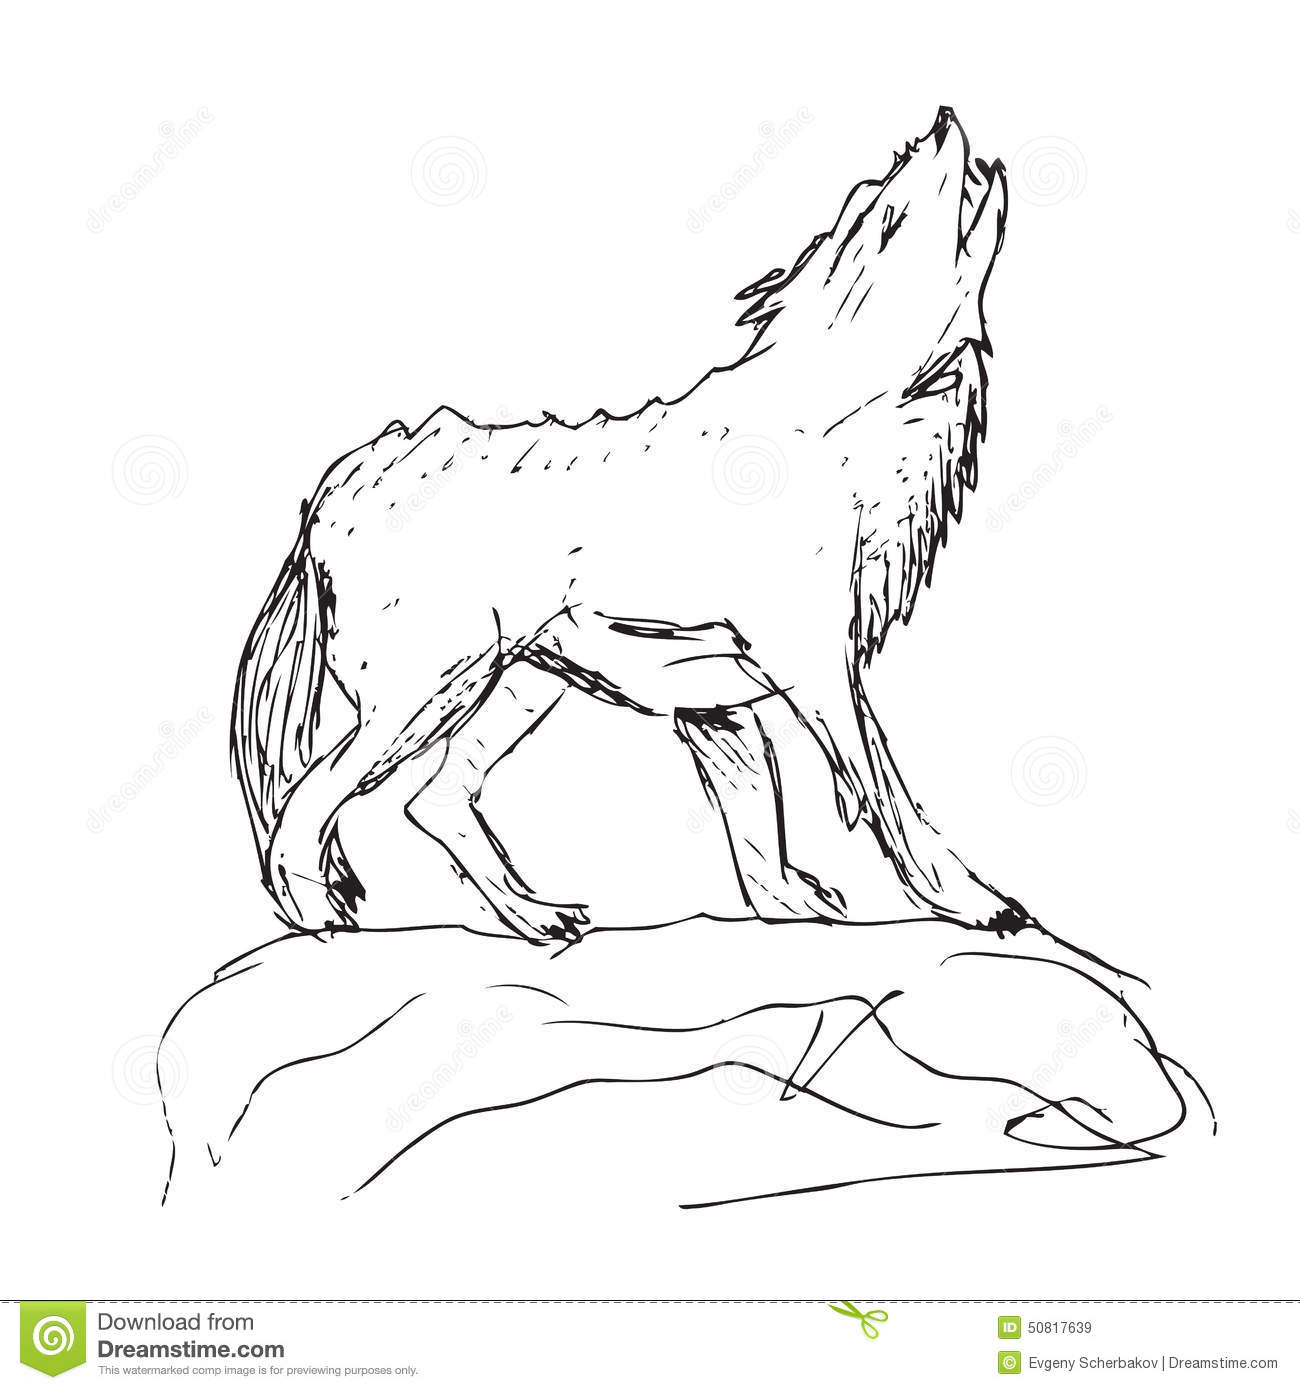 as well  moreover  likewise drawing big wolf silhouette 50817639 in addition 7005ef5deca251dff5a143f01f8b7b94 further The Star ColoringSht Donkey lm w1 likewise 13280460782141411990Cartoon 20Sheep svg hi besides Scarlet Macaw in addition two sheep outline as well  besides flamingo pink. on flock of animals coloring pages